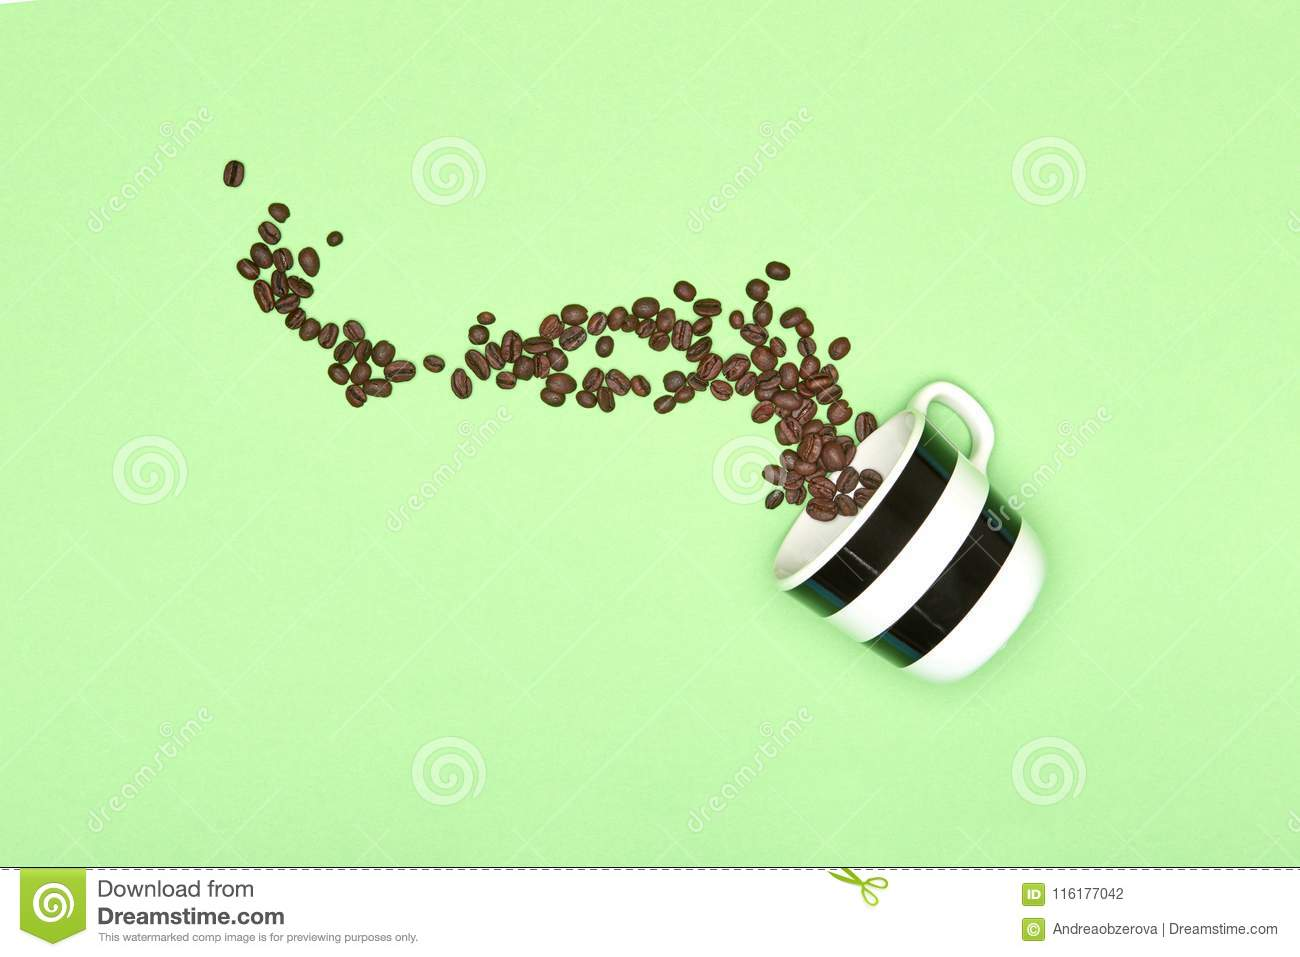 Creative pop art cup of coffee pastel coloured background. Coffee mug and roasted coffee beans.